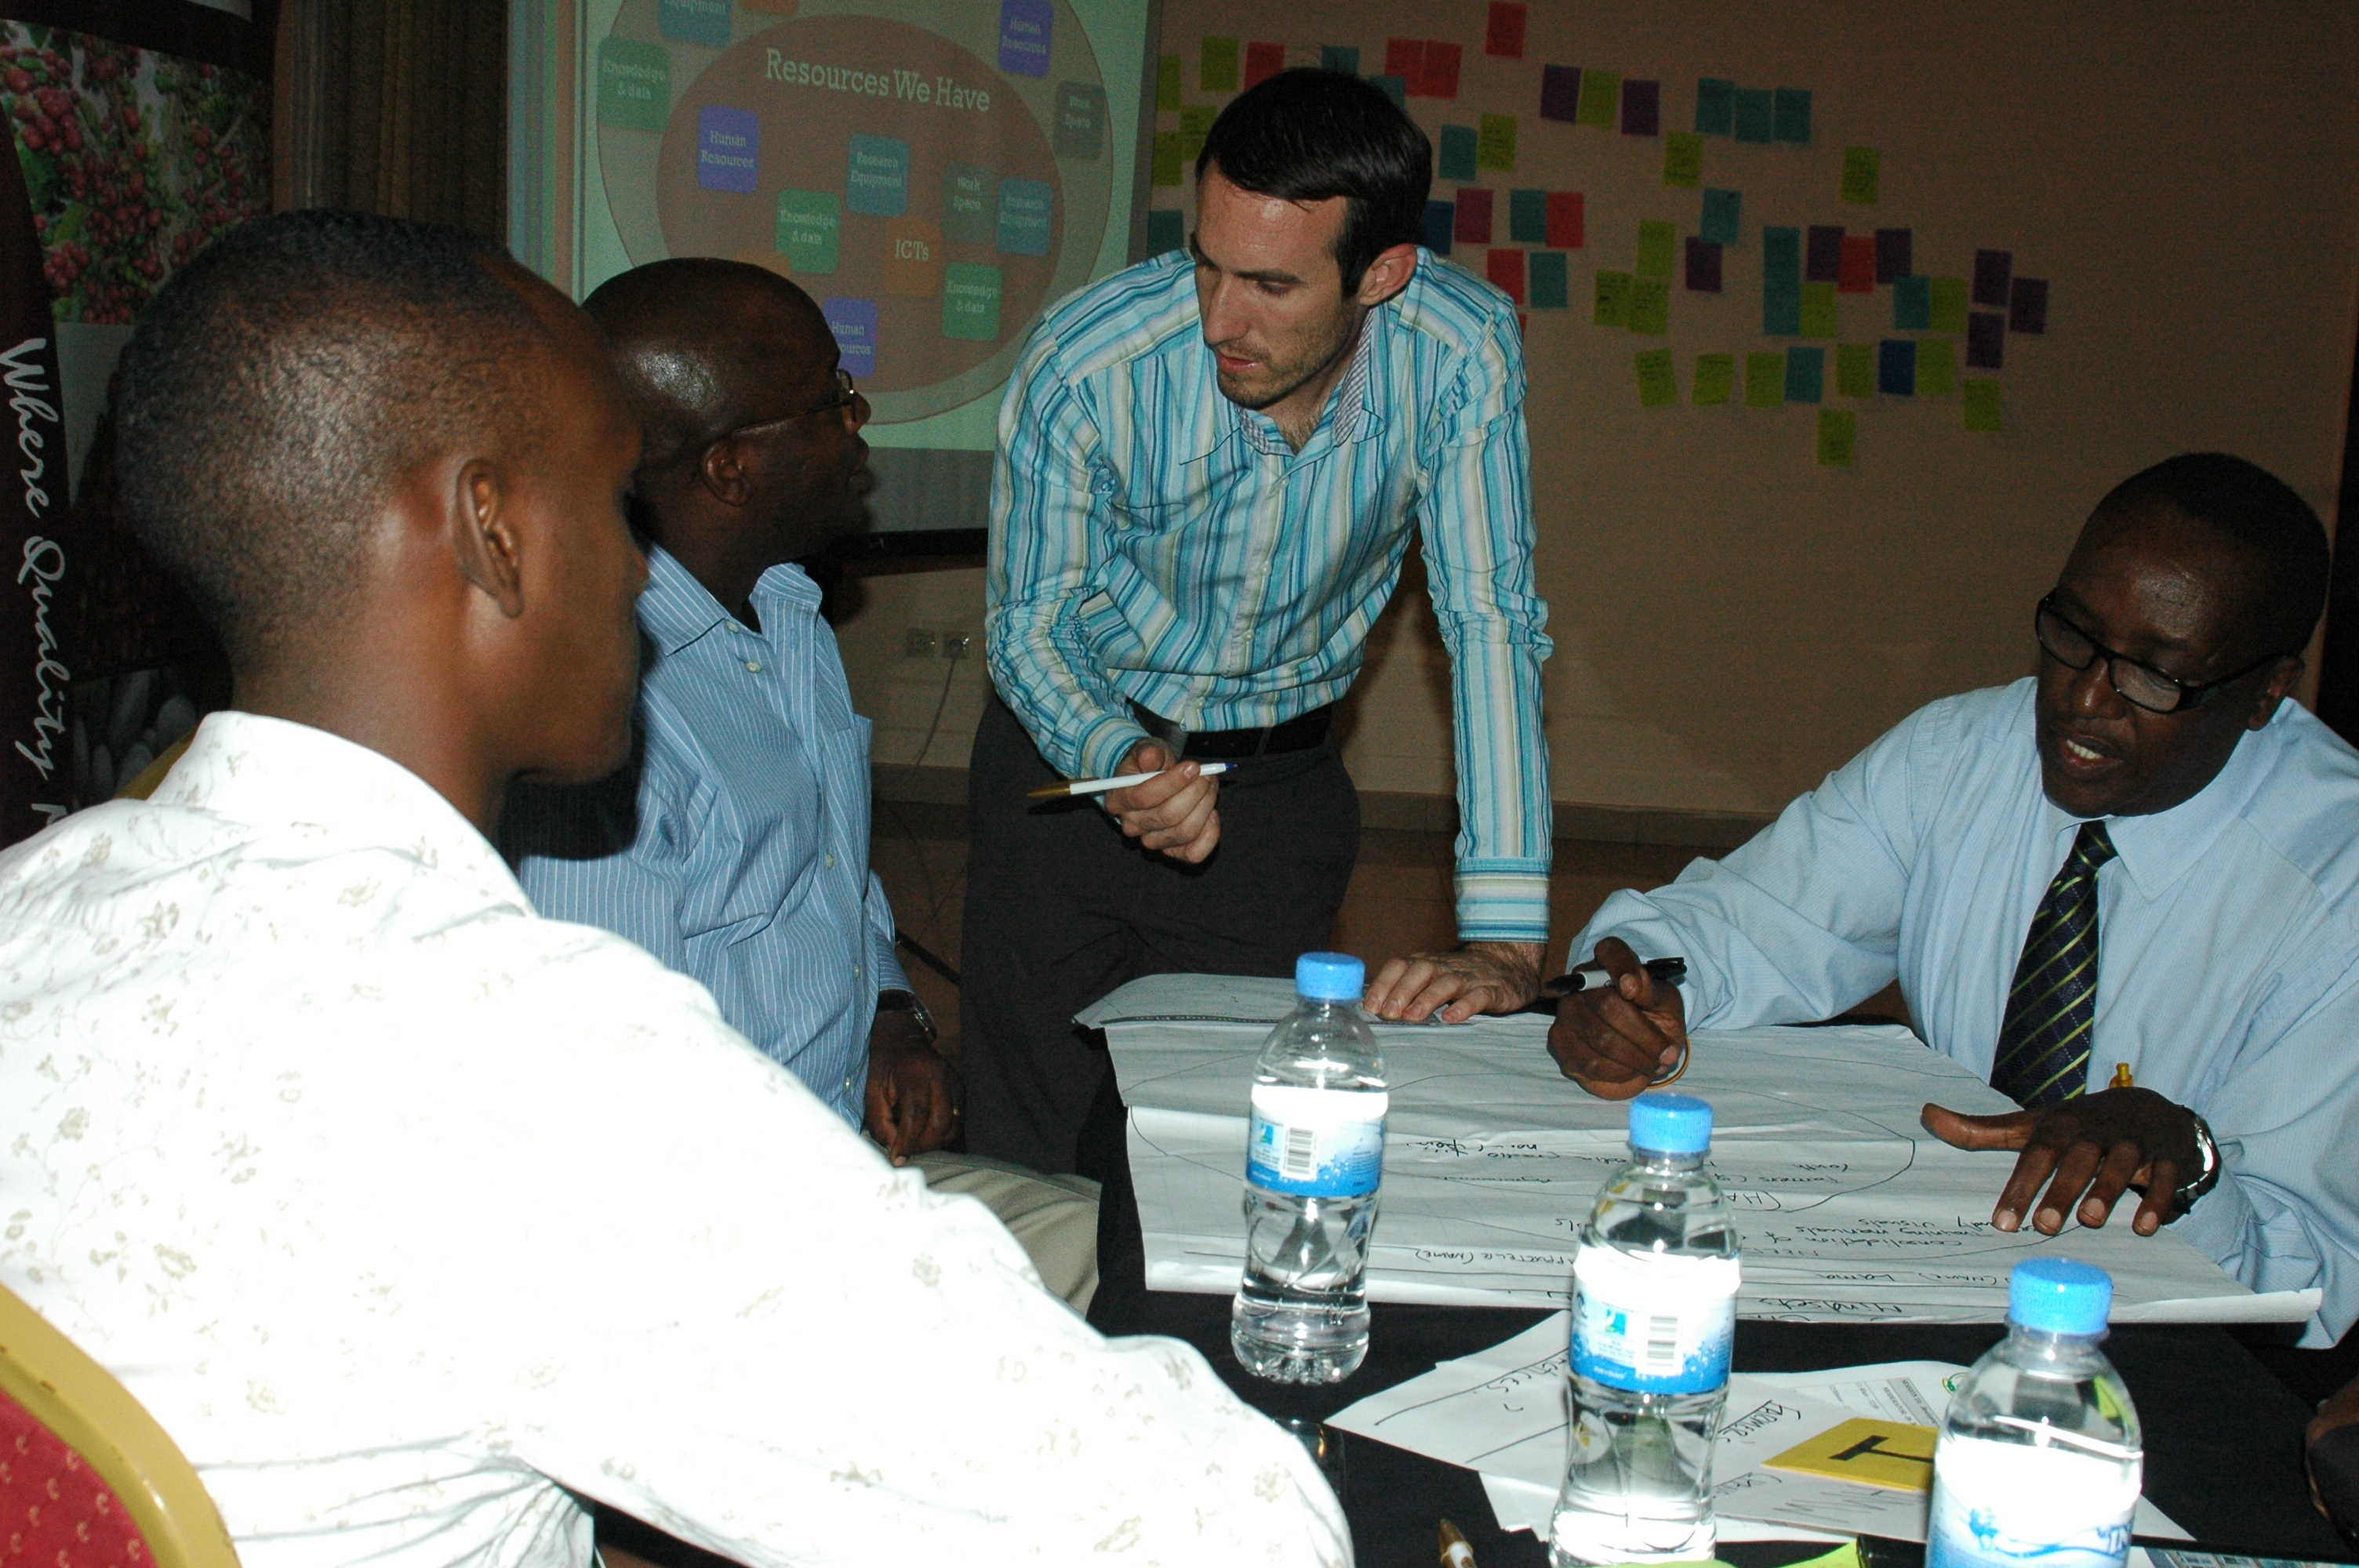 Participants map the resources they have and need to solve specific coffee challenges. Photo Credit: GKI